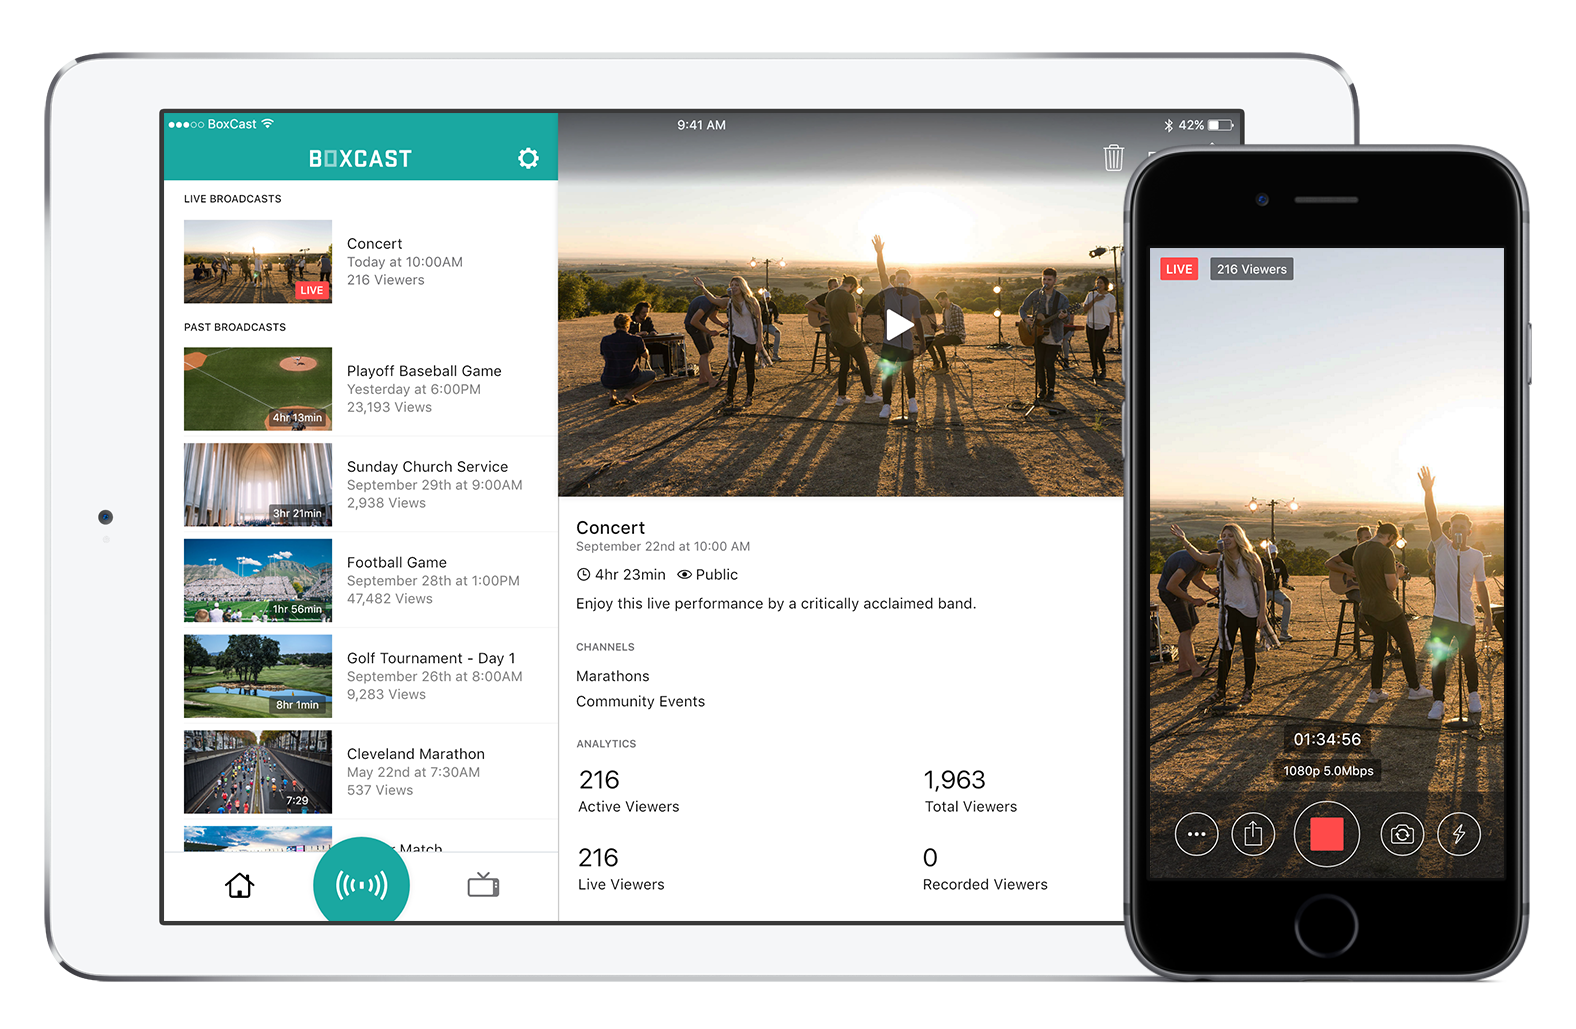 Manage broadcasts right from your iPhone